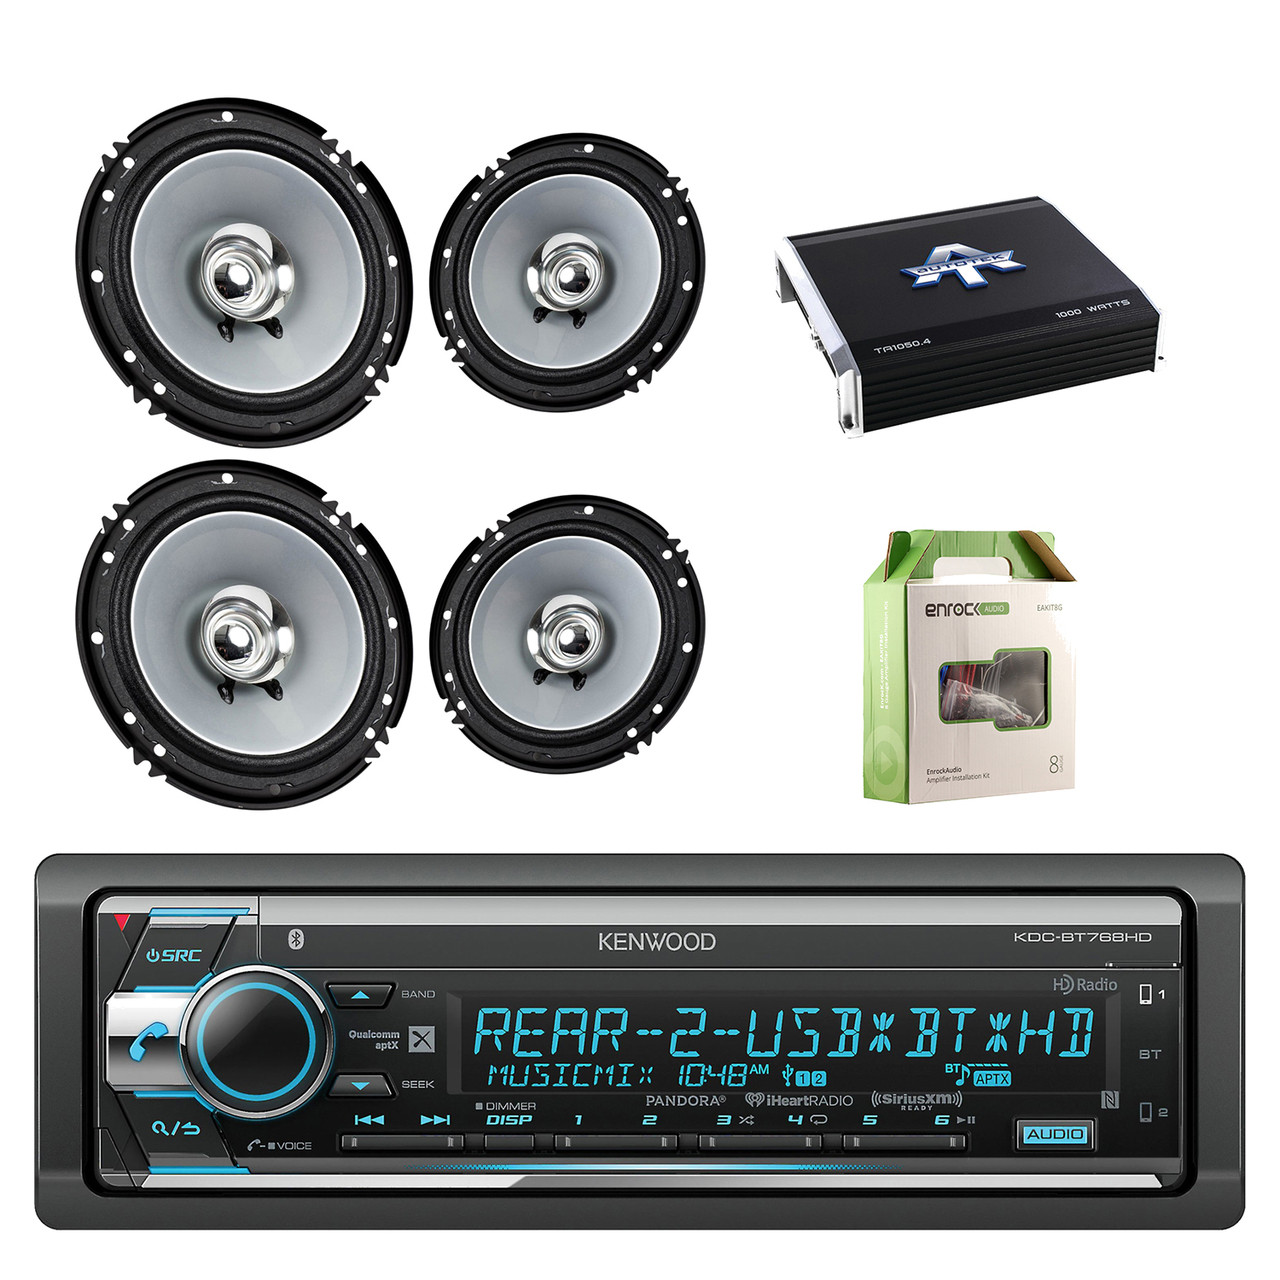 small resolution of kenwood single din cd am fm car audio receiver w bluetooth with kenwood 6 5 inch 2 way 600 watts car audio coaxial speakers stereo 2 pairs